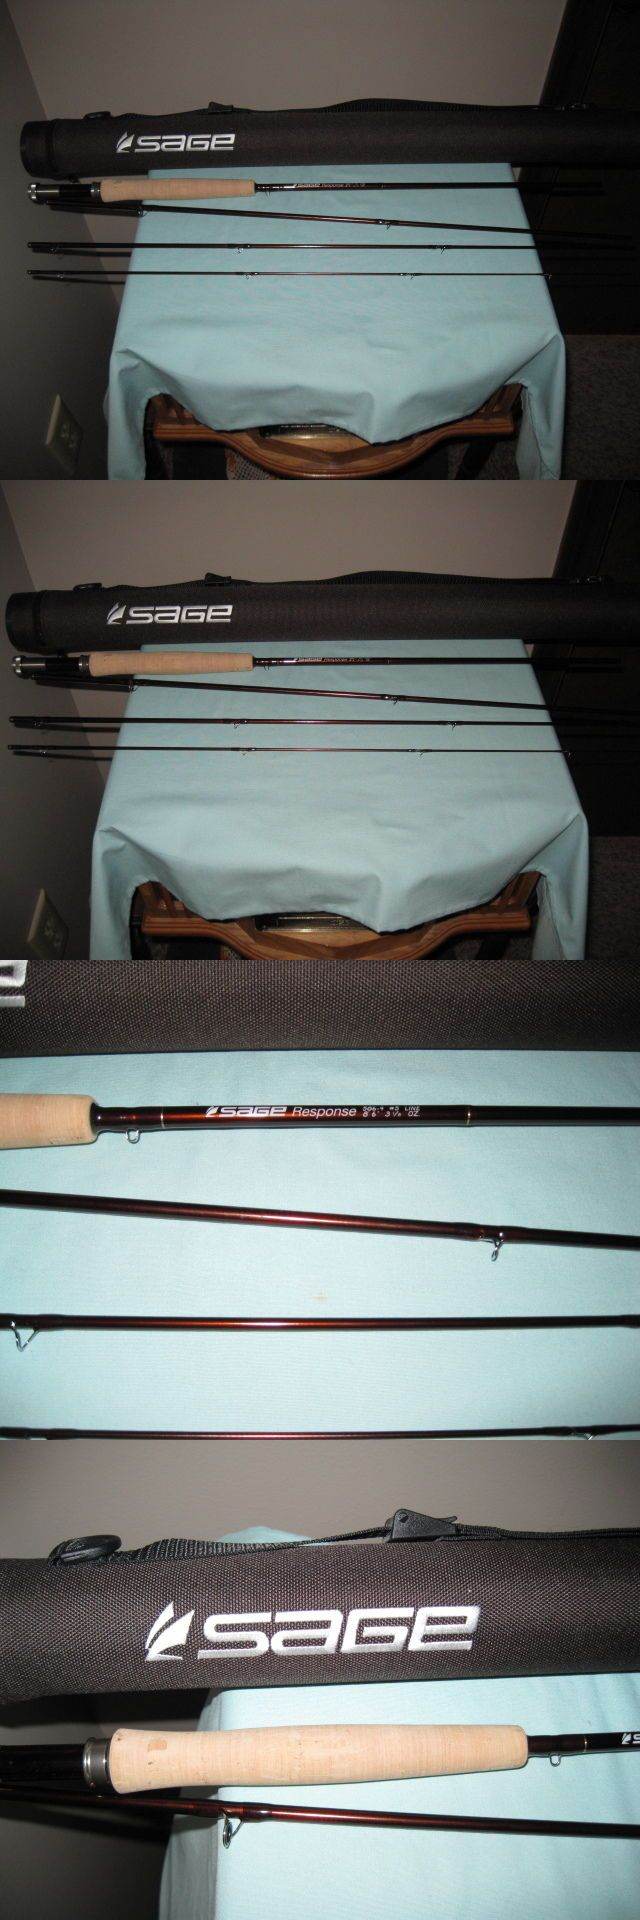 Fly Fishing Rods 23819: Sage Response 586-4 86 5Wt. 4Pc. Fly Fishing Rod - New BUY IT NOW ONLY: $325.0